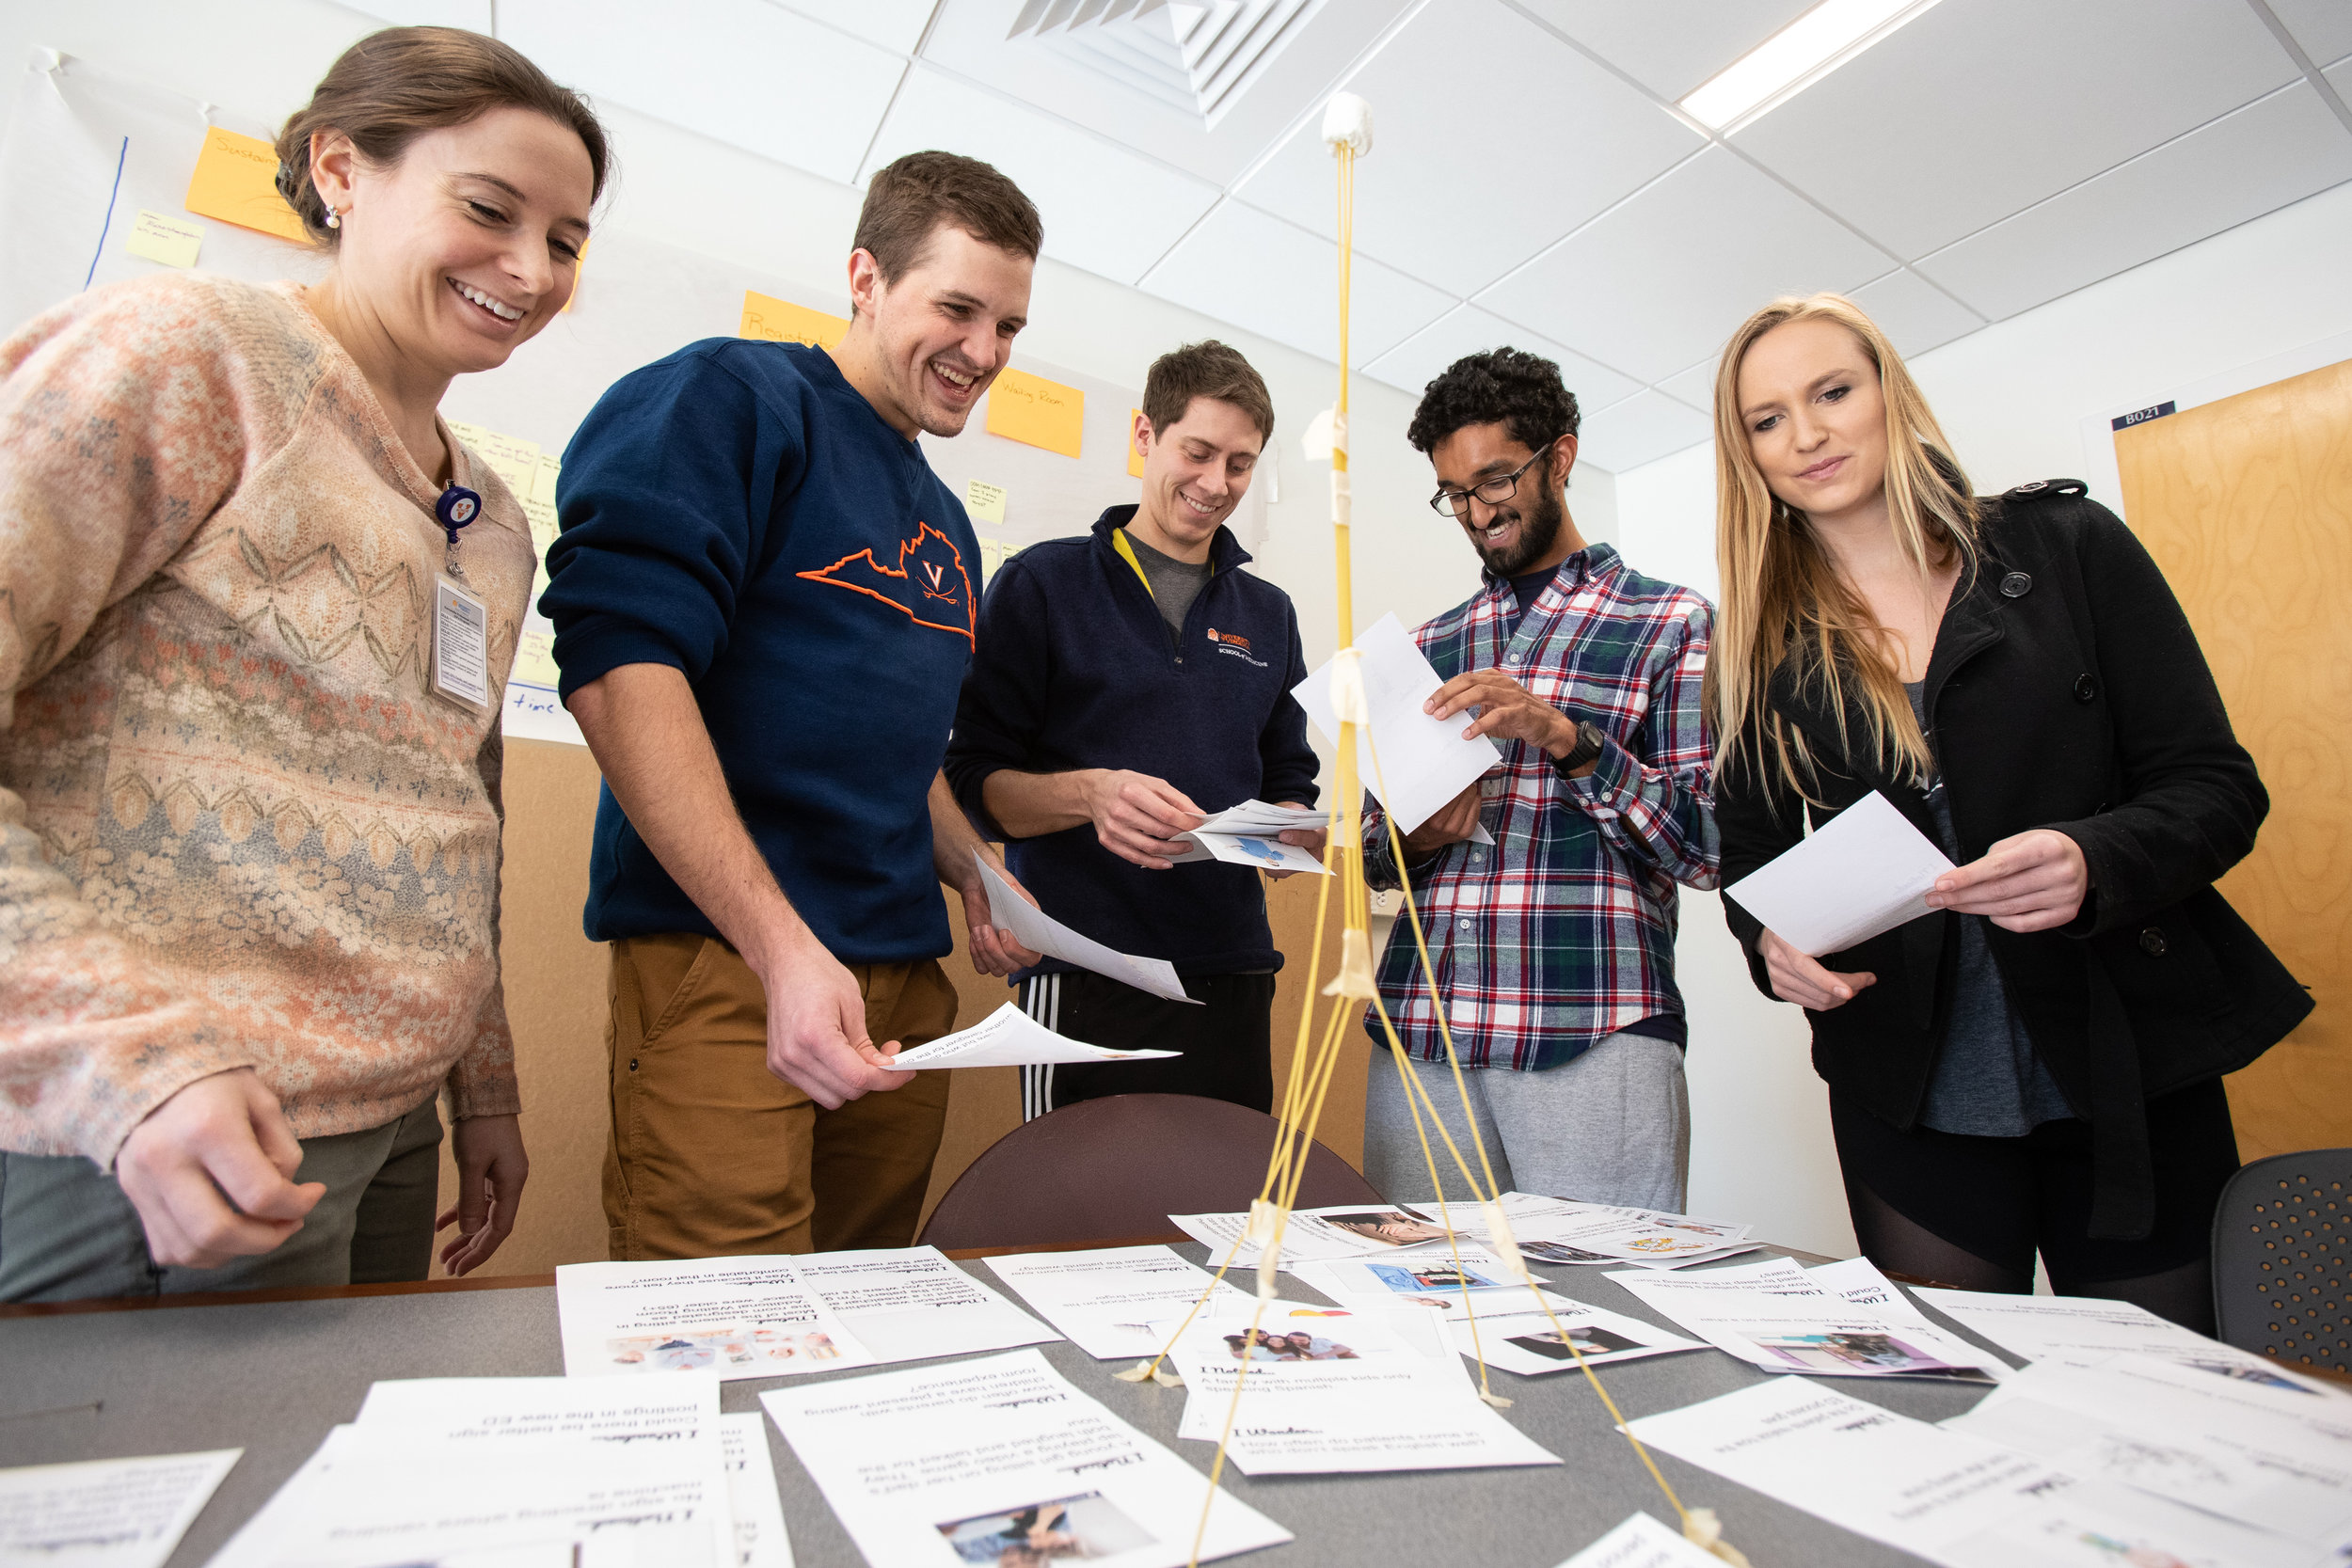 Design + Med ED - UVA is among a growing group of medical schools and health systems exploring how design thinking might be integrated into medical education.